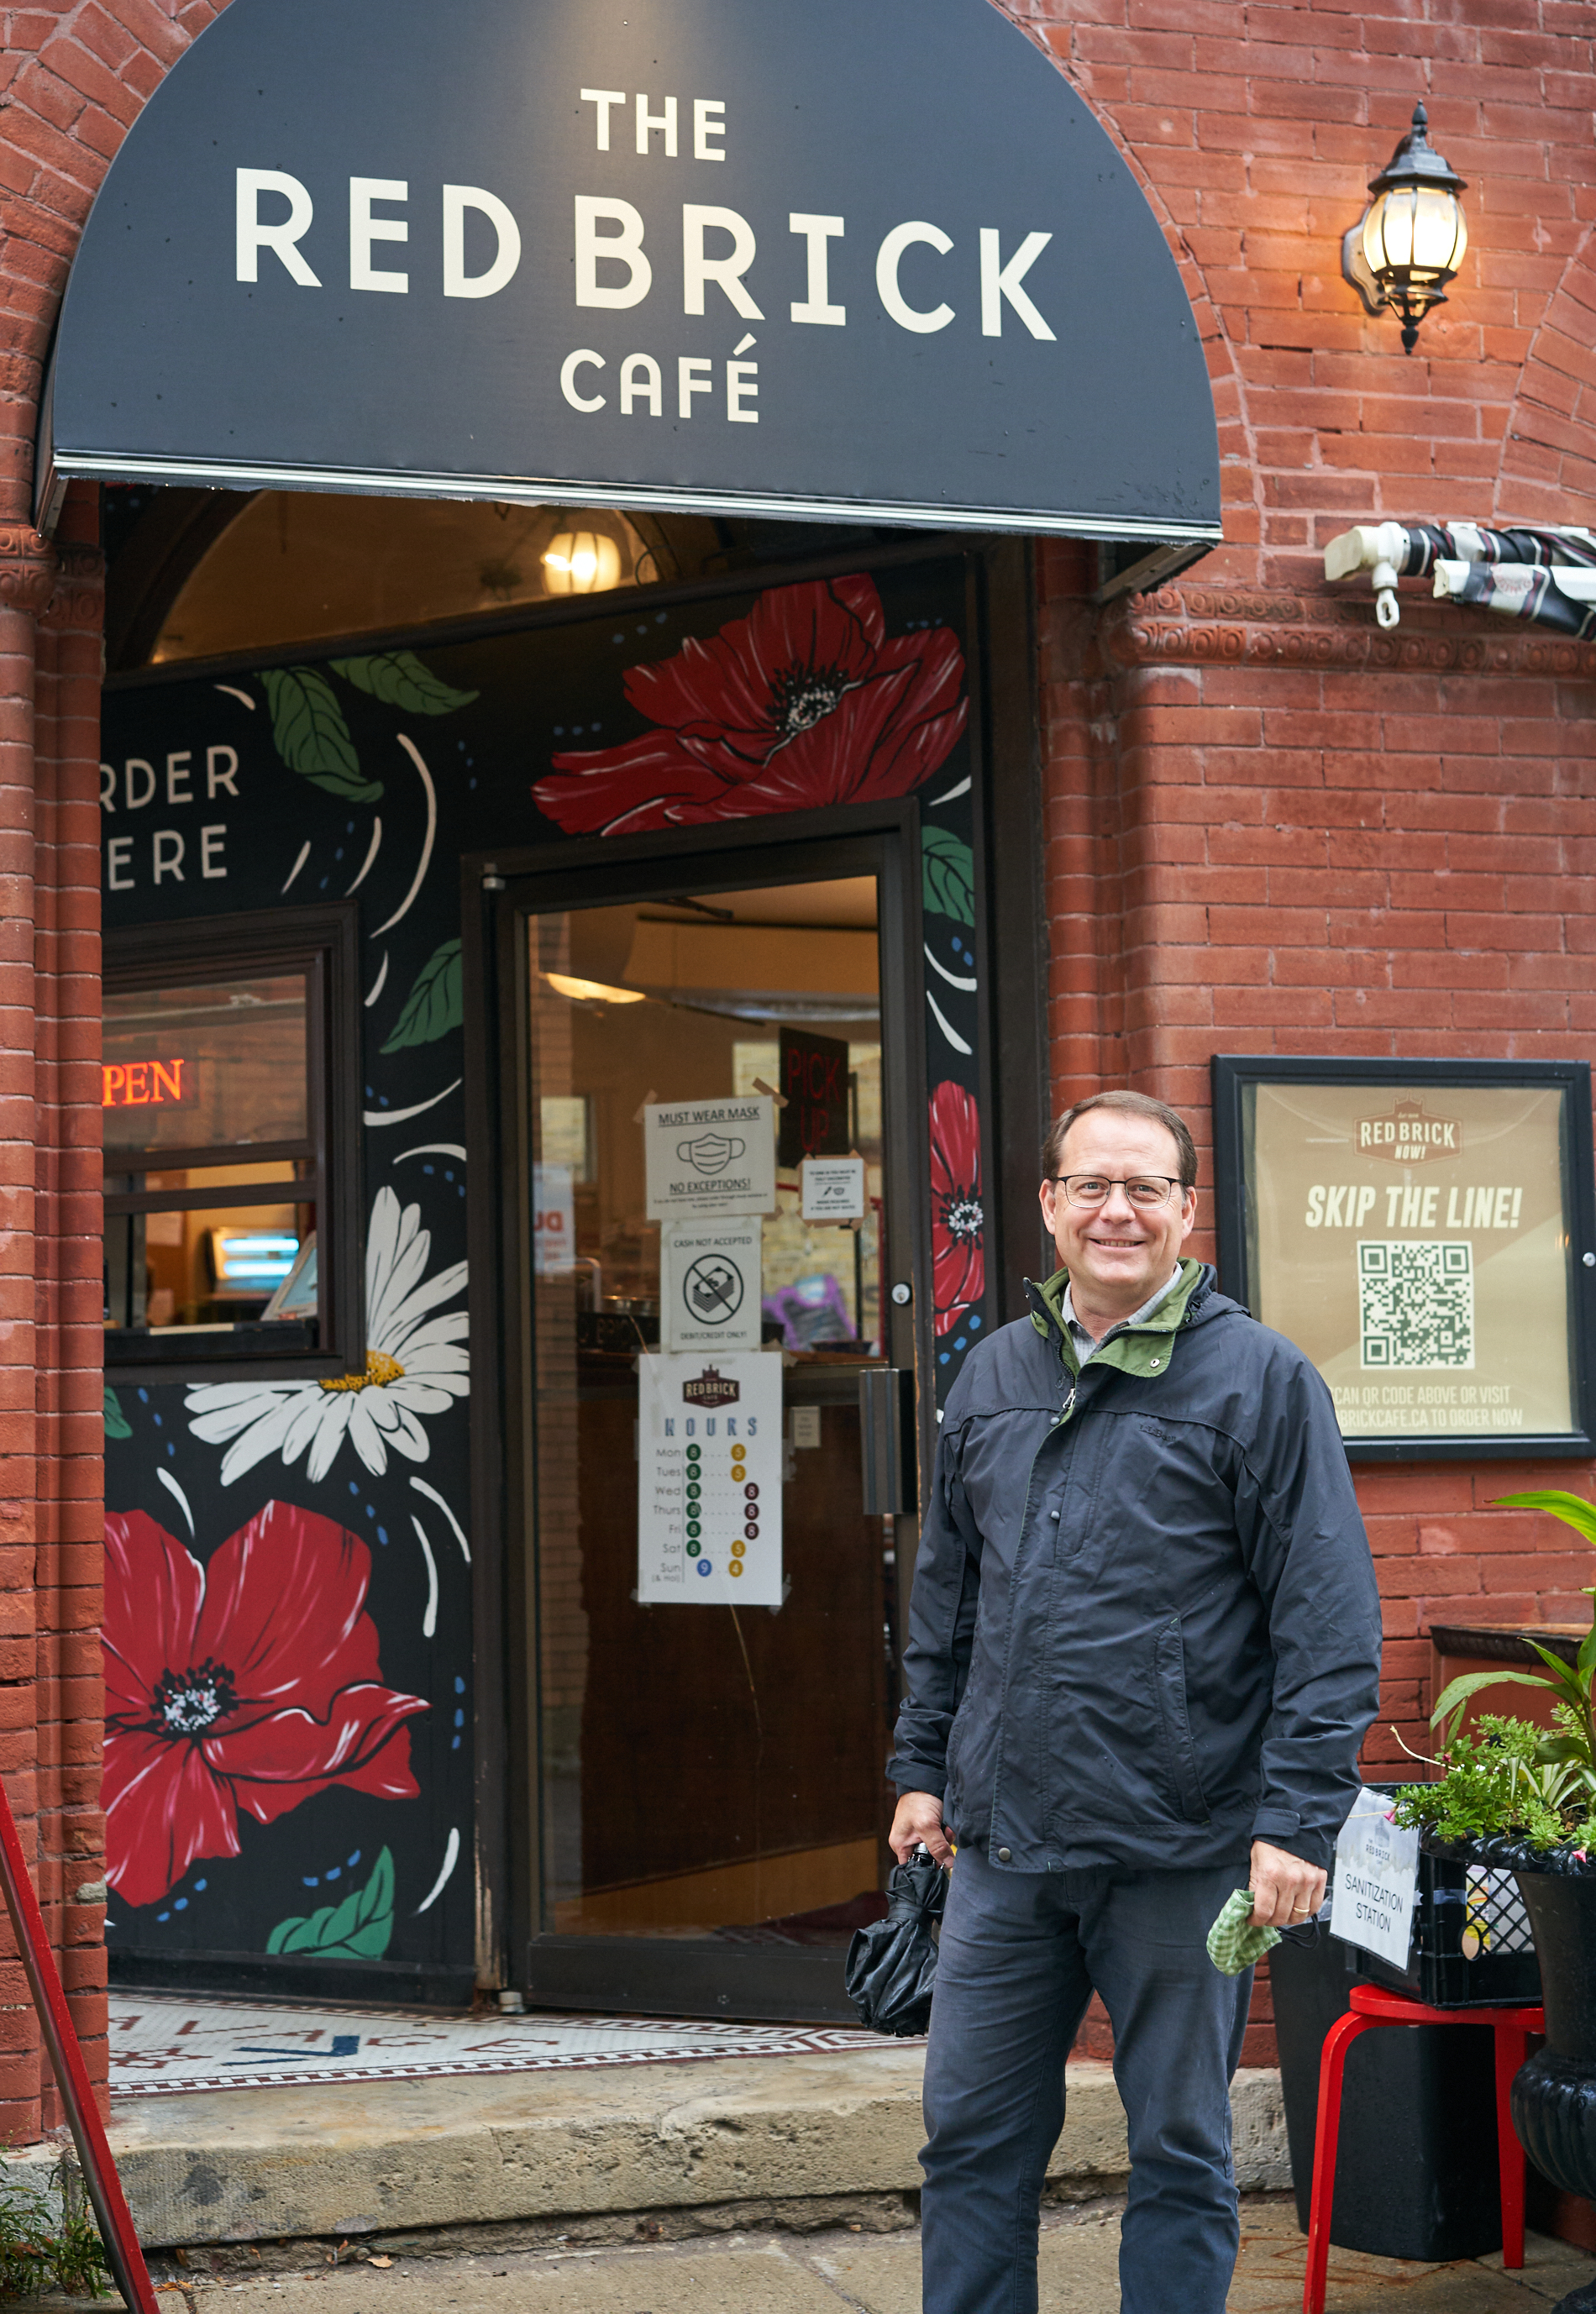 Guelph MPP Mike Schreiner stands outside the Red Brick Cafe in Guelph, on a rainy Wednesday afternoon.